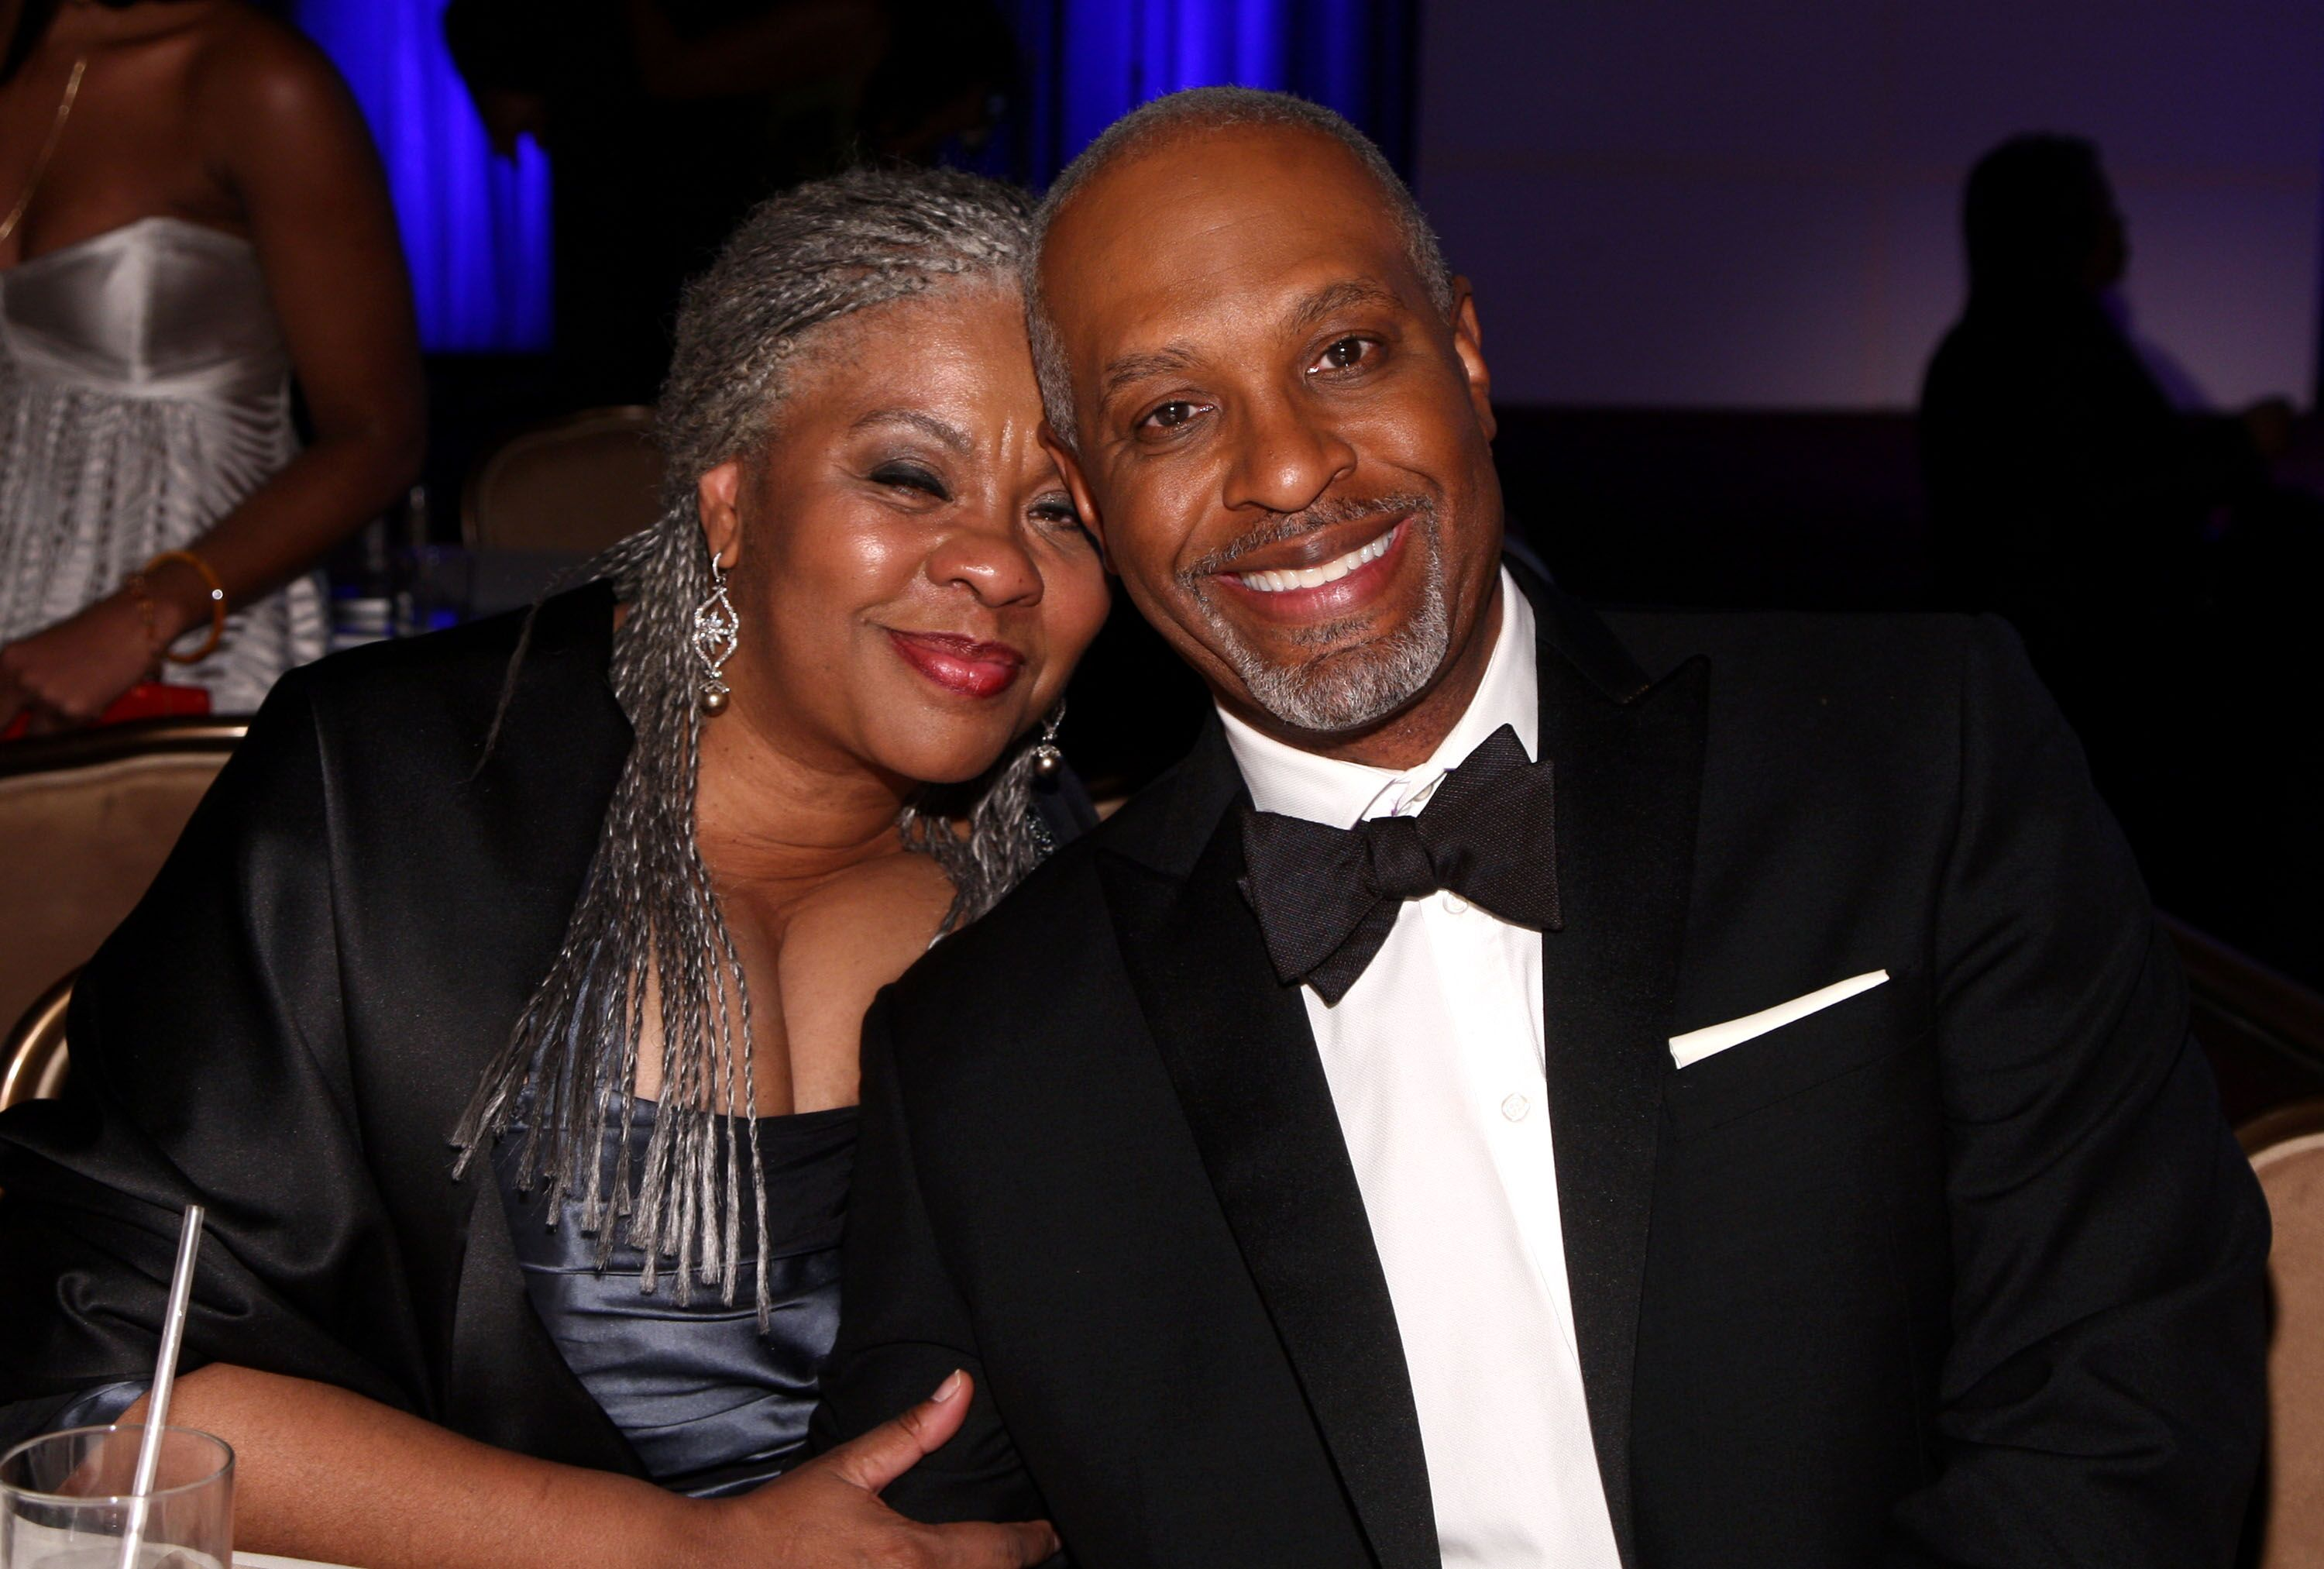 Actor James Pickens Jr and wife Gina Pickens at the after party for the 40th NAACP Image Awards on February 12, 2009 | Photo: Getty Images